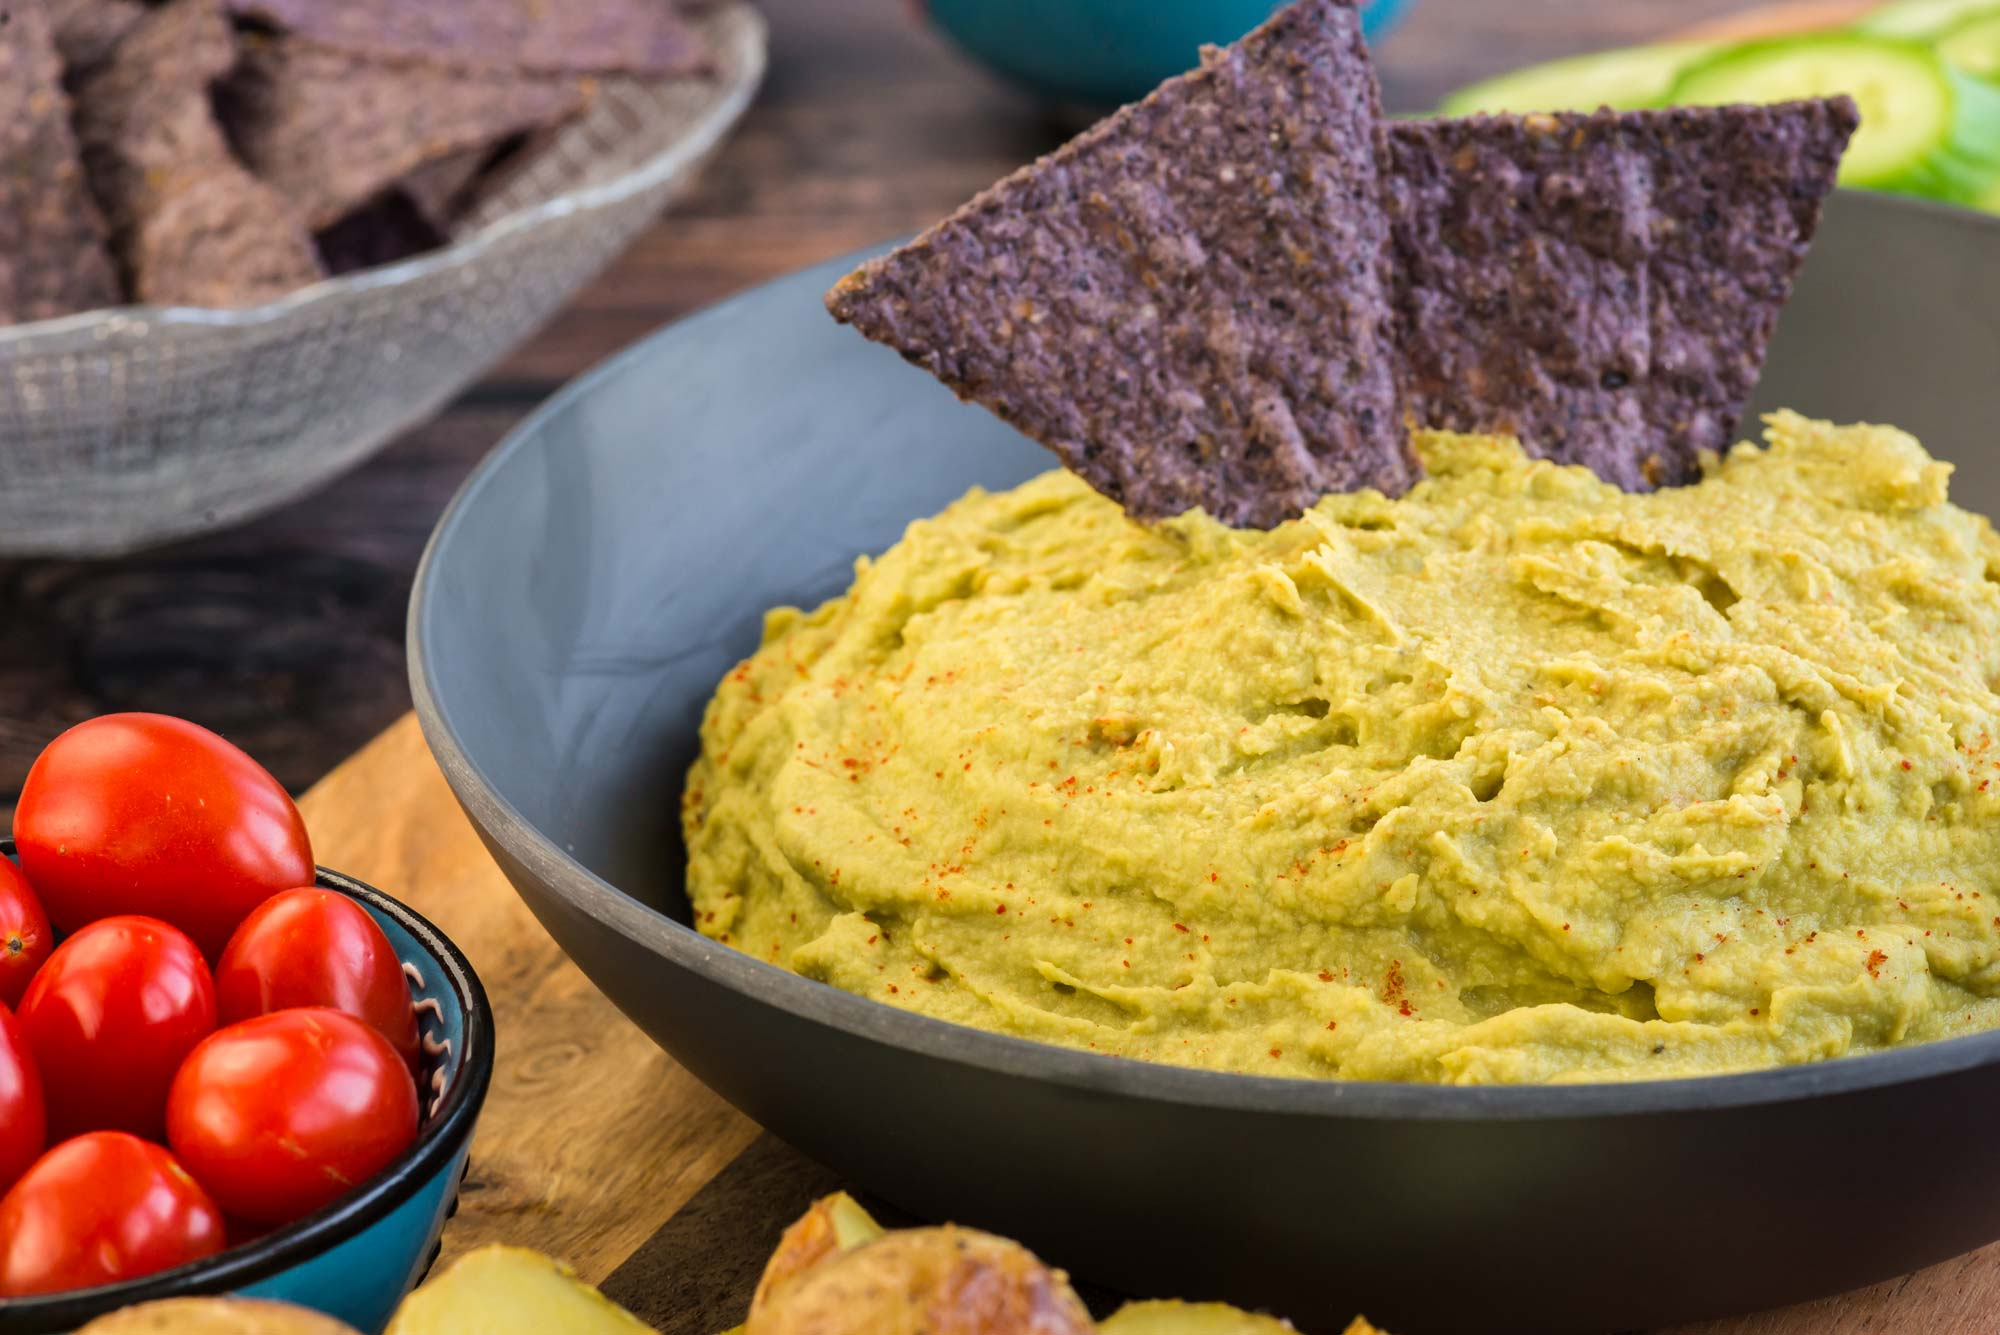 green pea hummus in bowl with chips